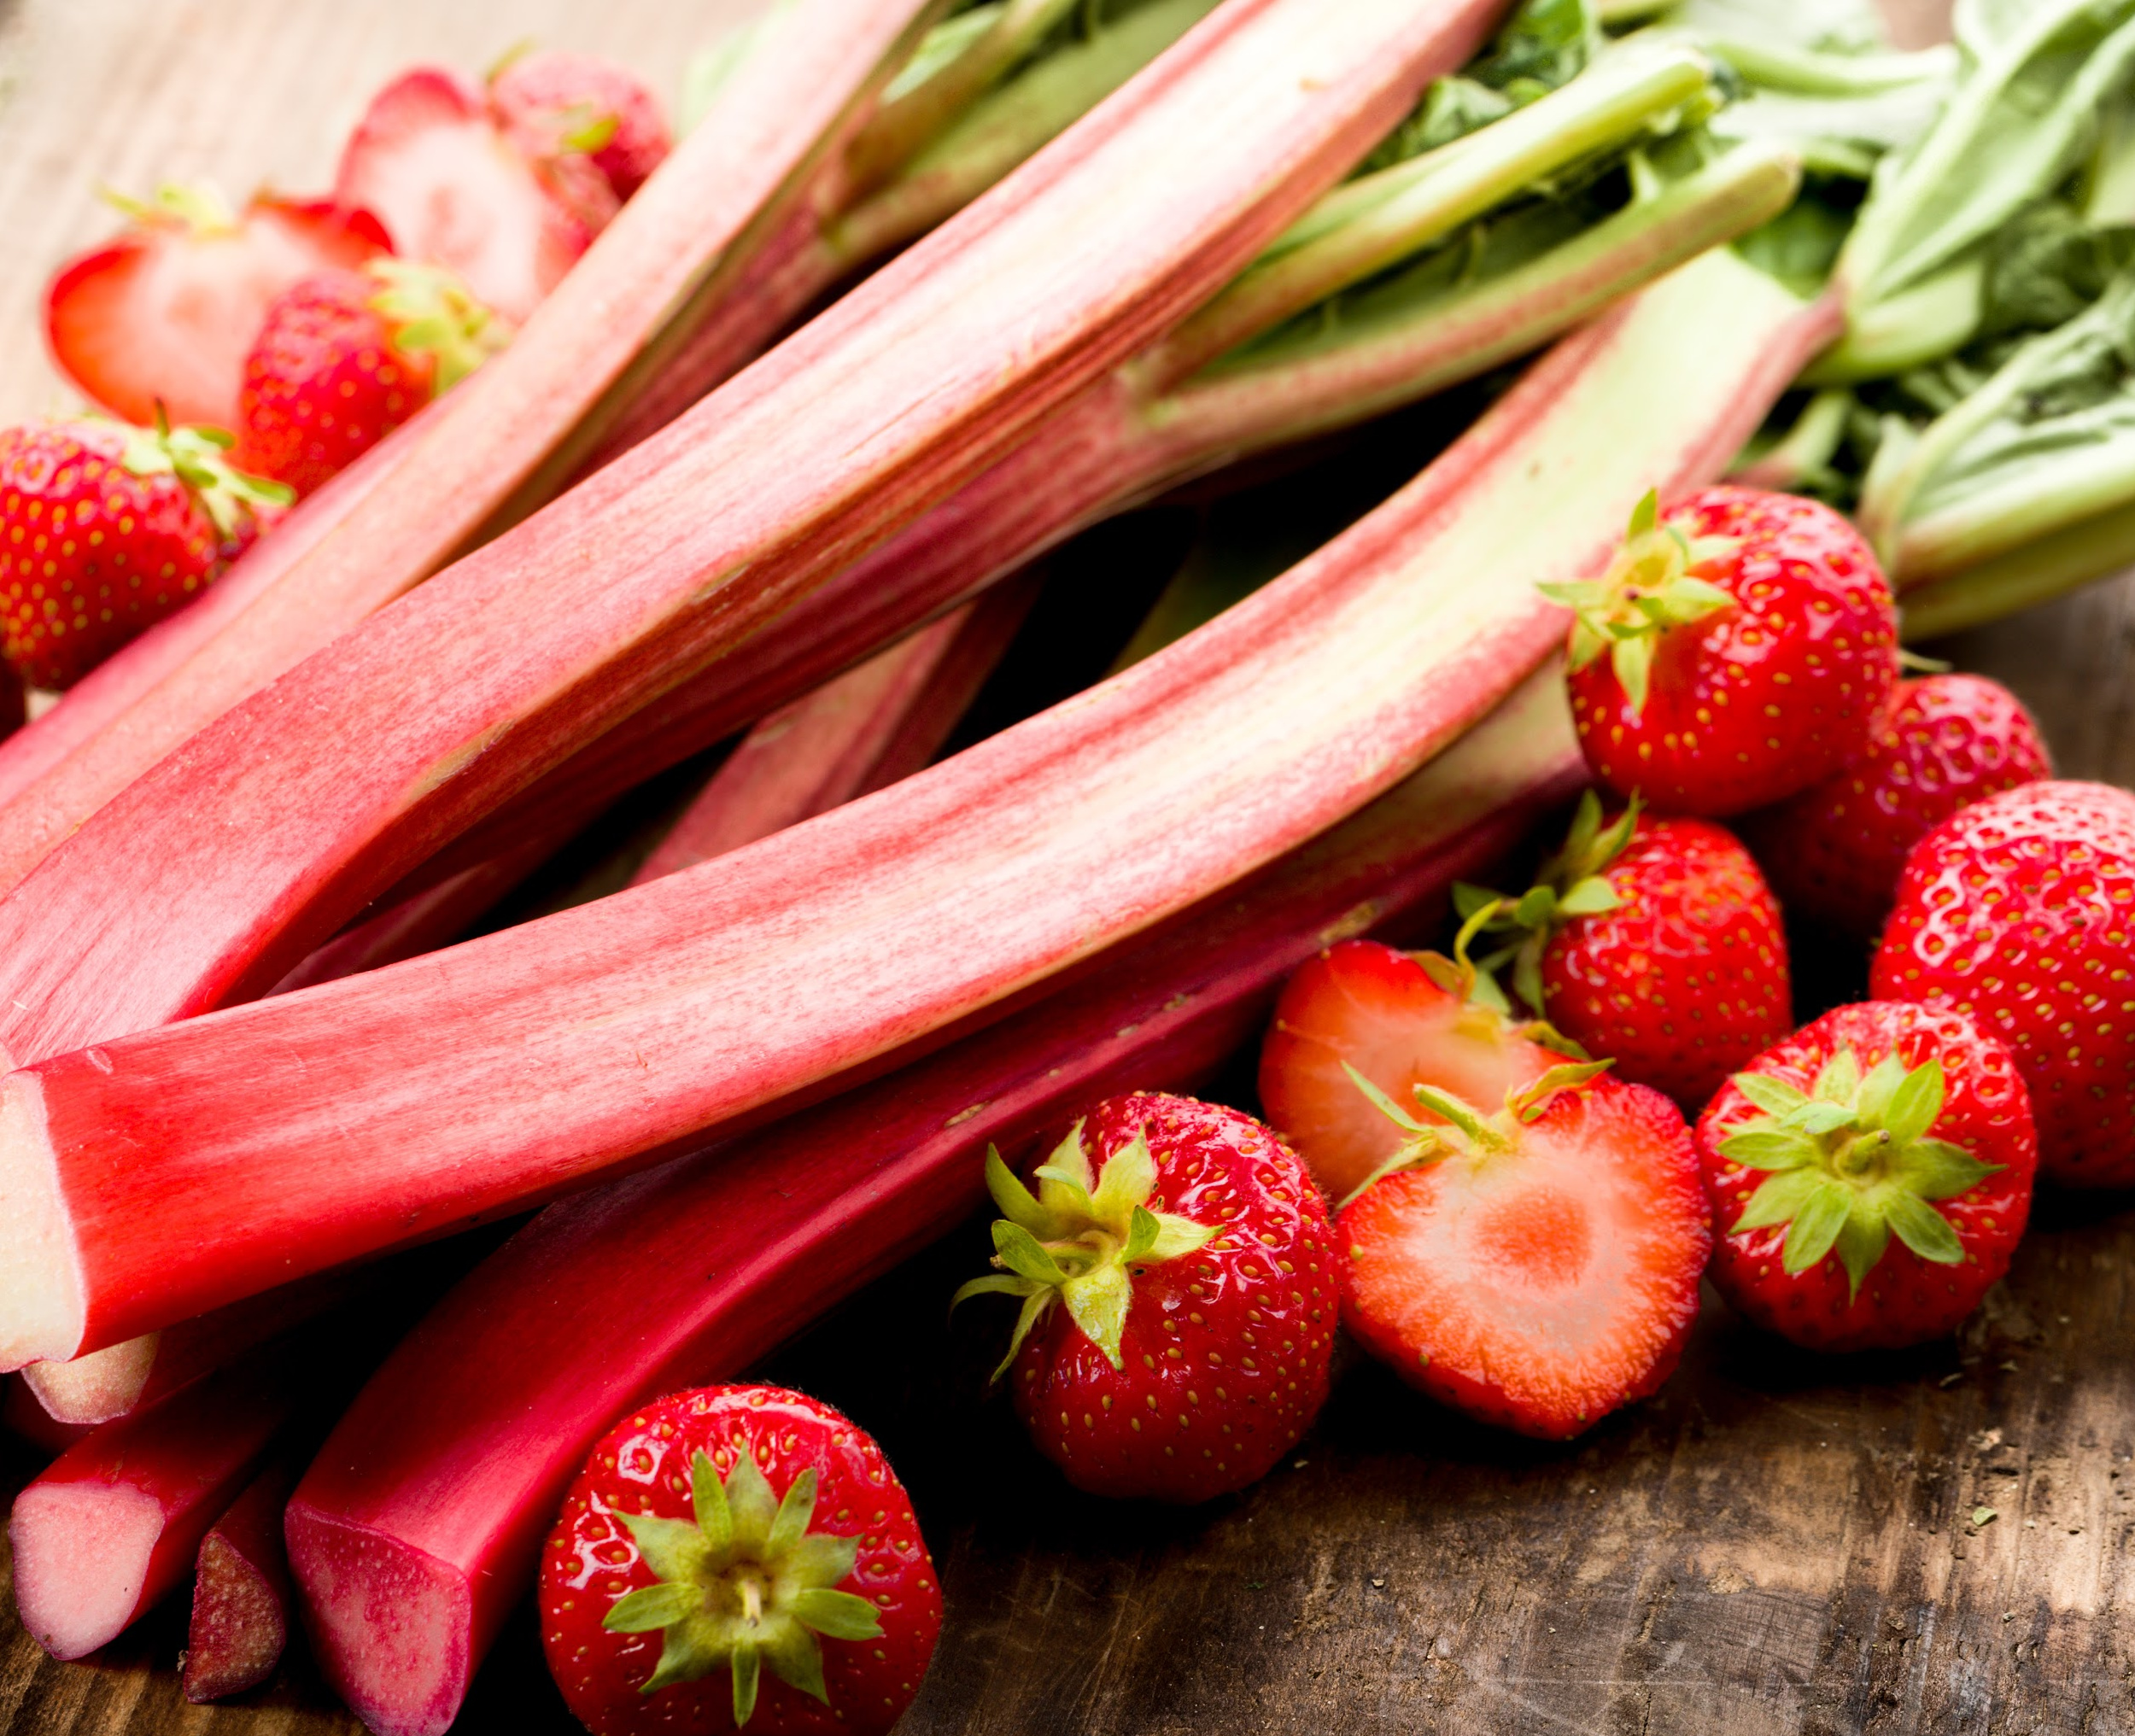 Fresh rhubarb and strawberries on a wooden surface